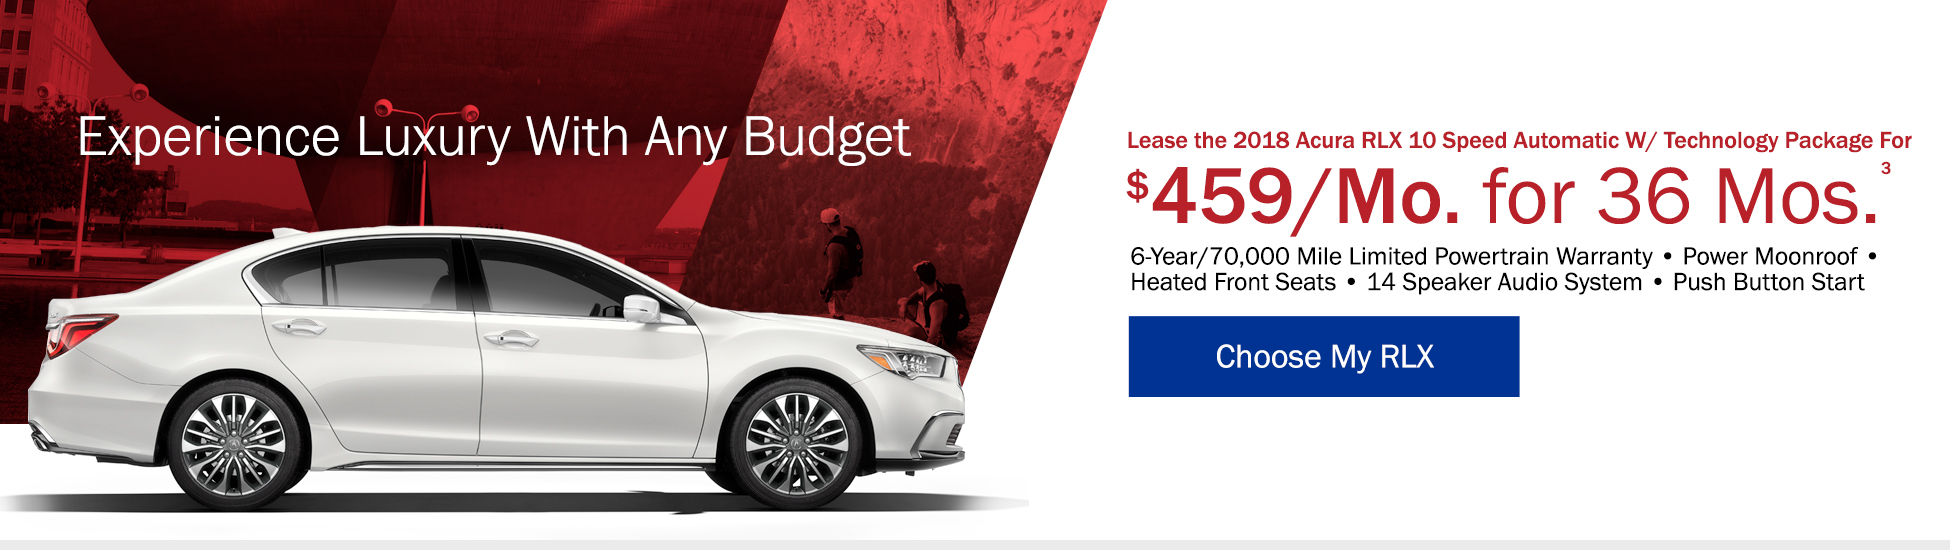 Lease the 2018 Acura RLX 10 Speed Automatic with Tech Pacagke for $519 per month for 36 months - Shop RLX